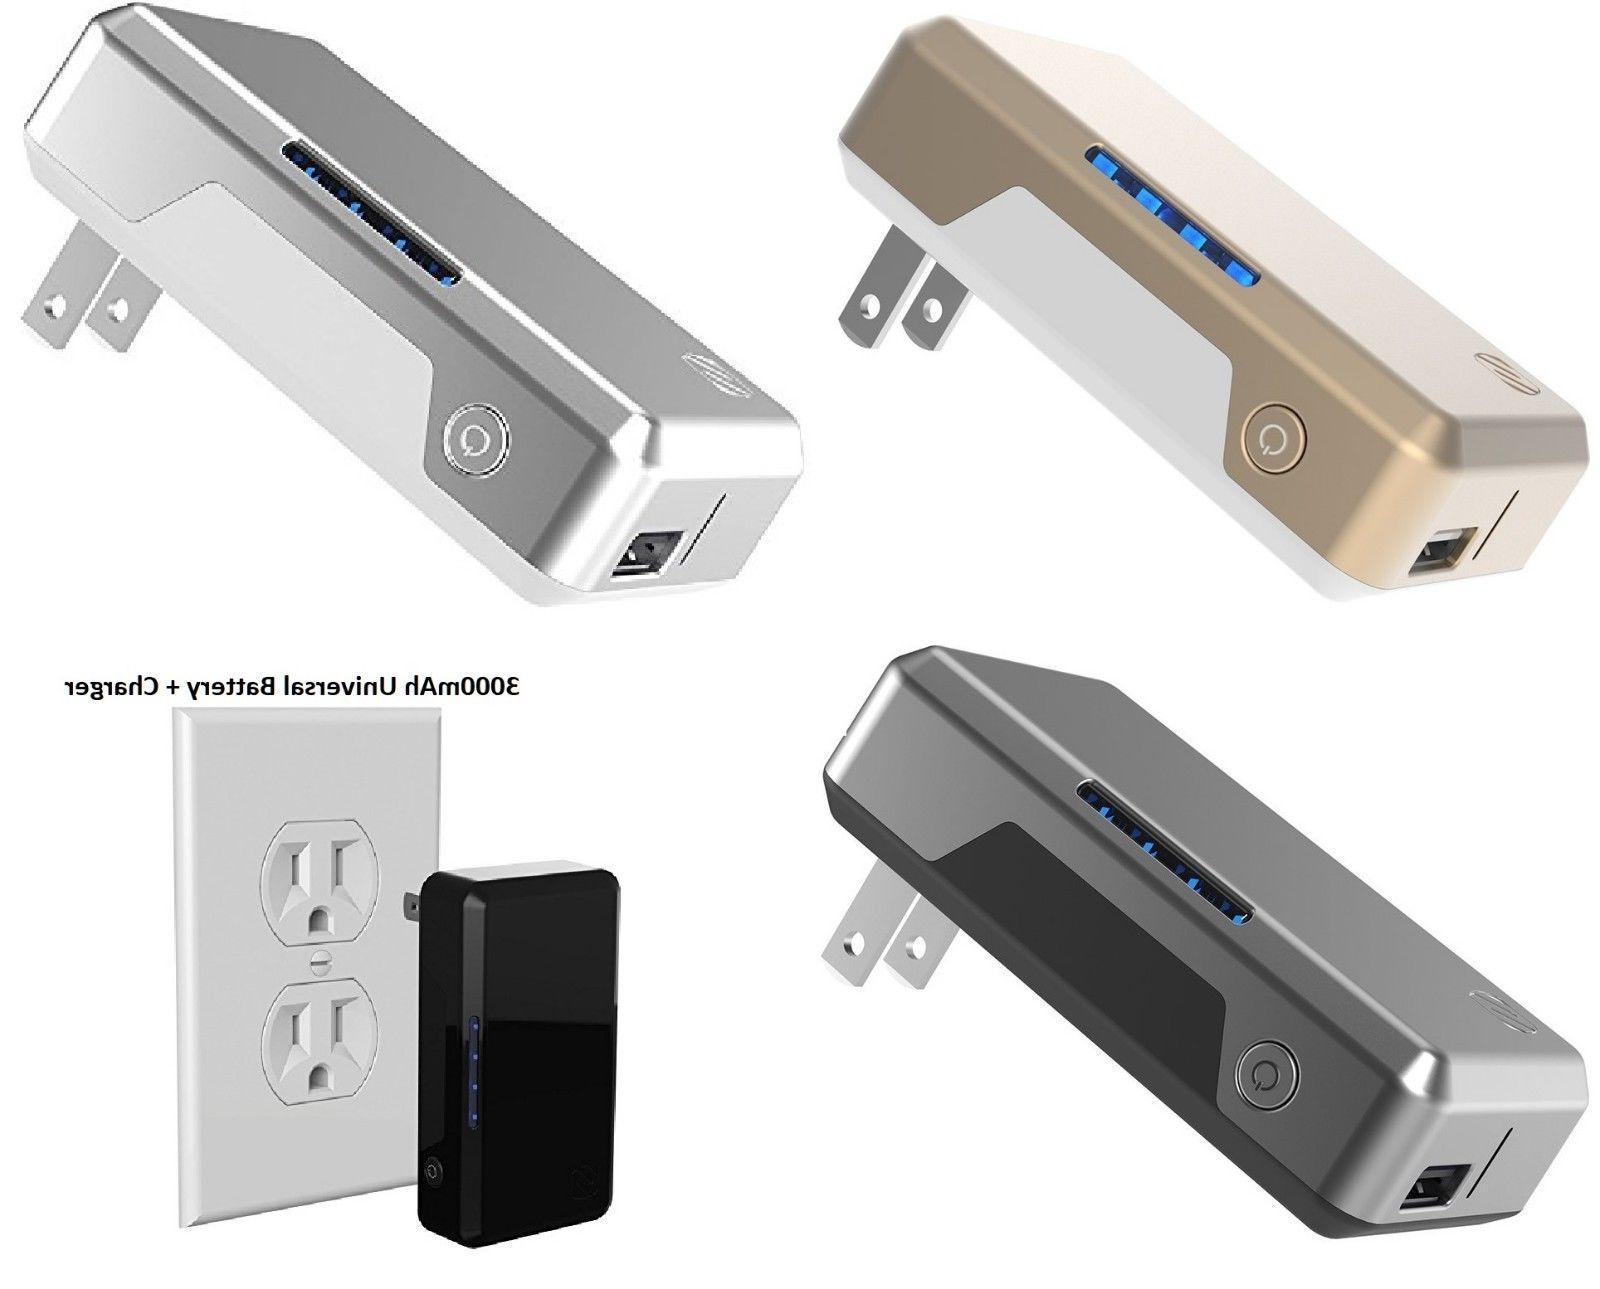 2 in 1 wall charger and portable